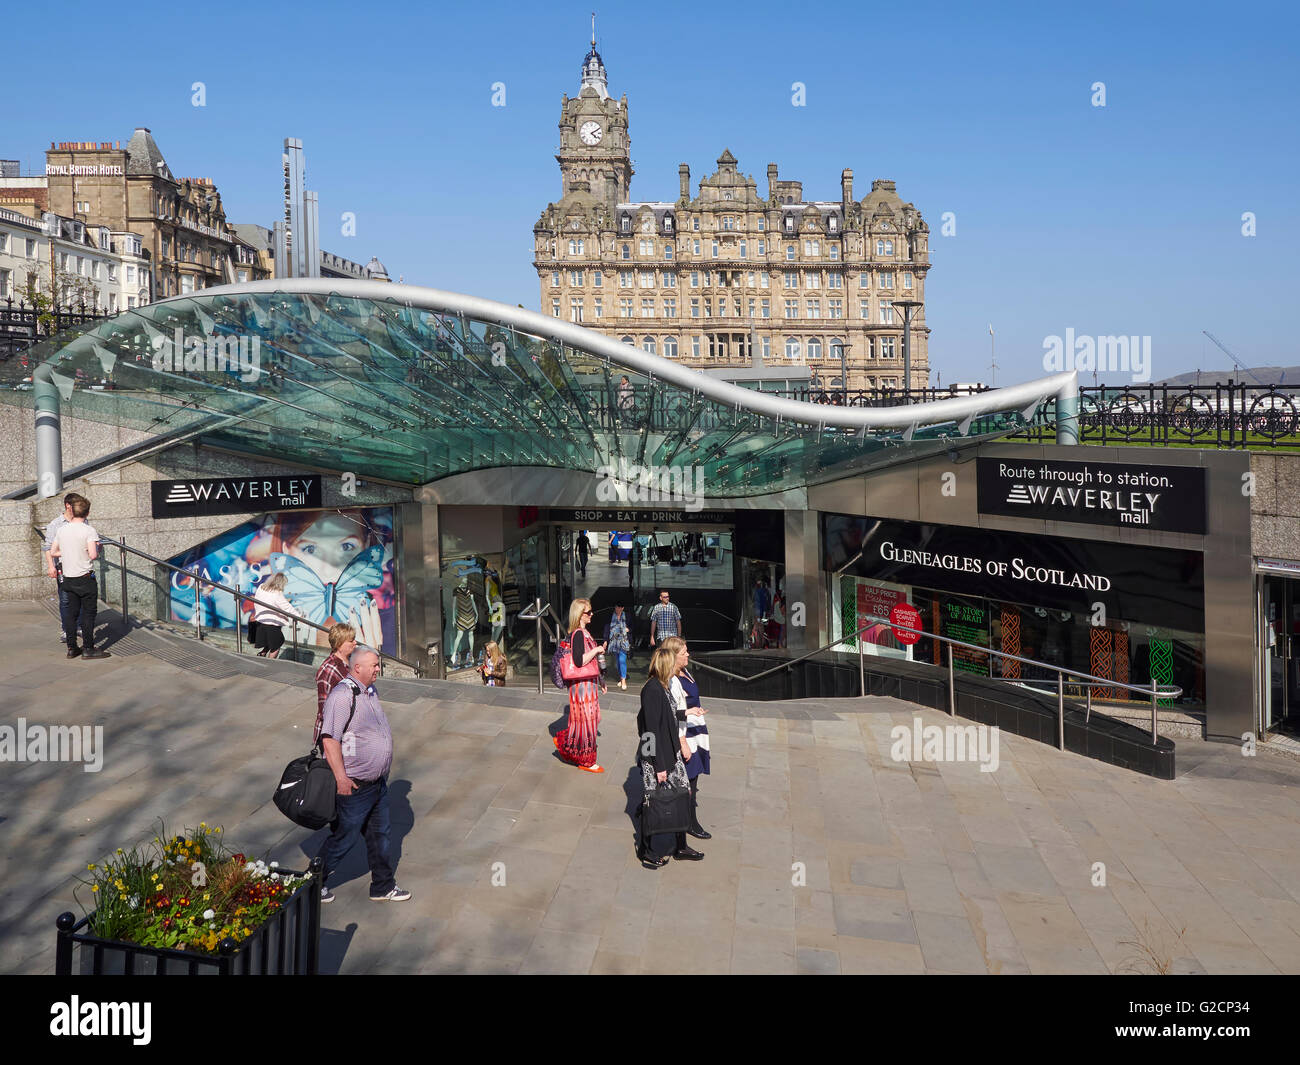 Edinburgh Waverley Mall and Station entrance off Princes Street - Stock Image